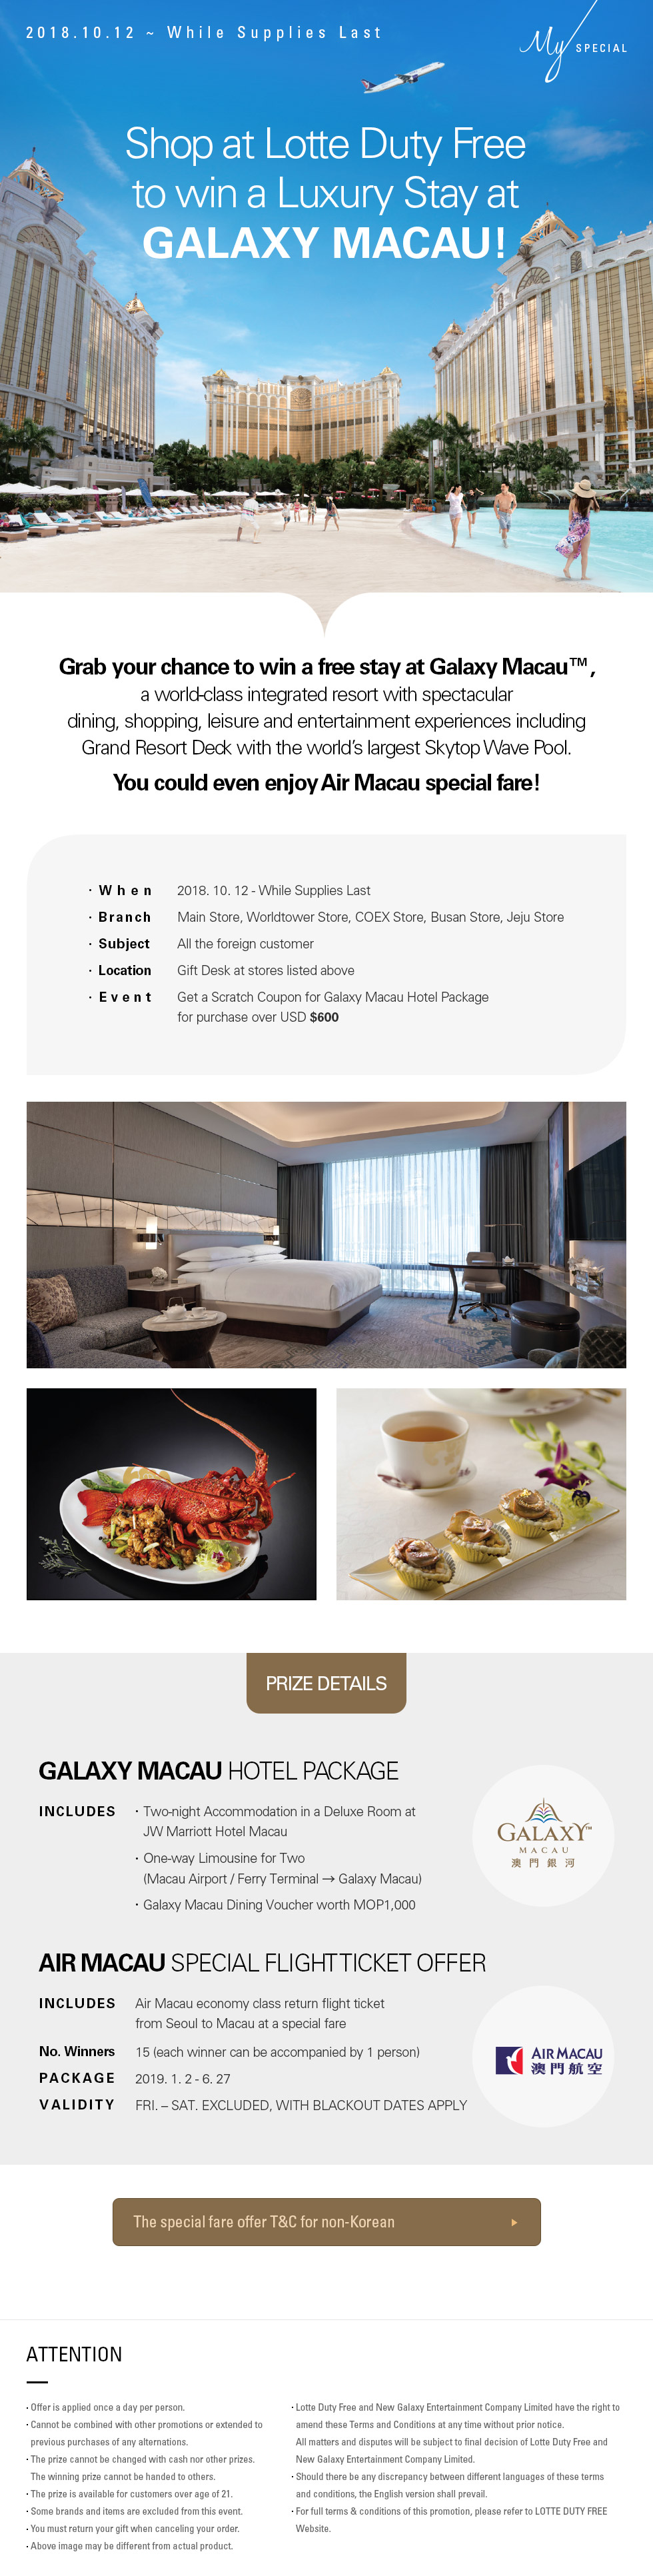 Shop at Lotte Duty Free to win a Luxury Stay at Galaxy Macau!